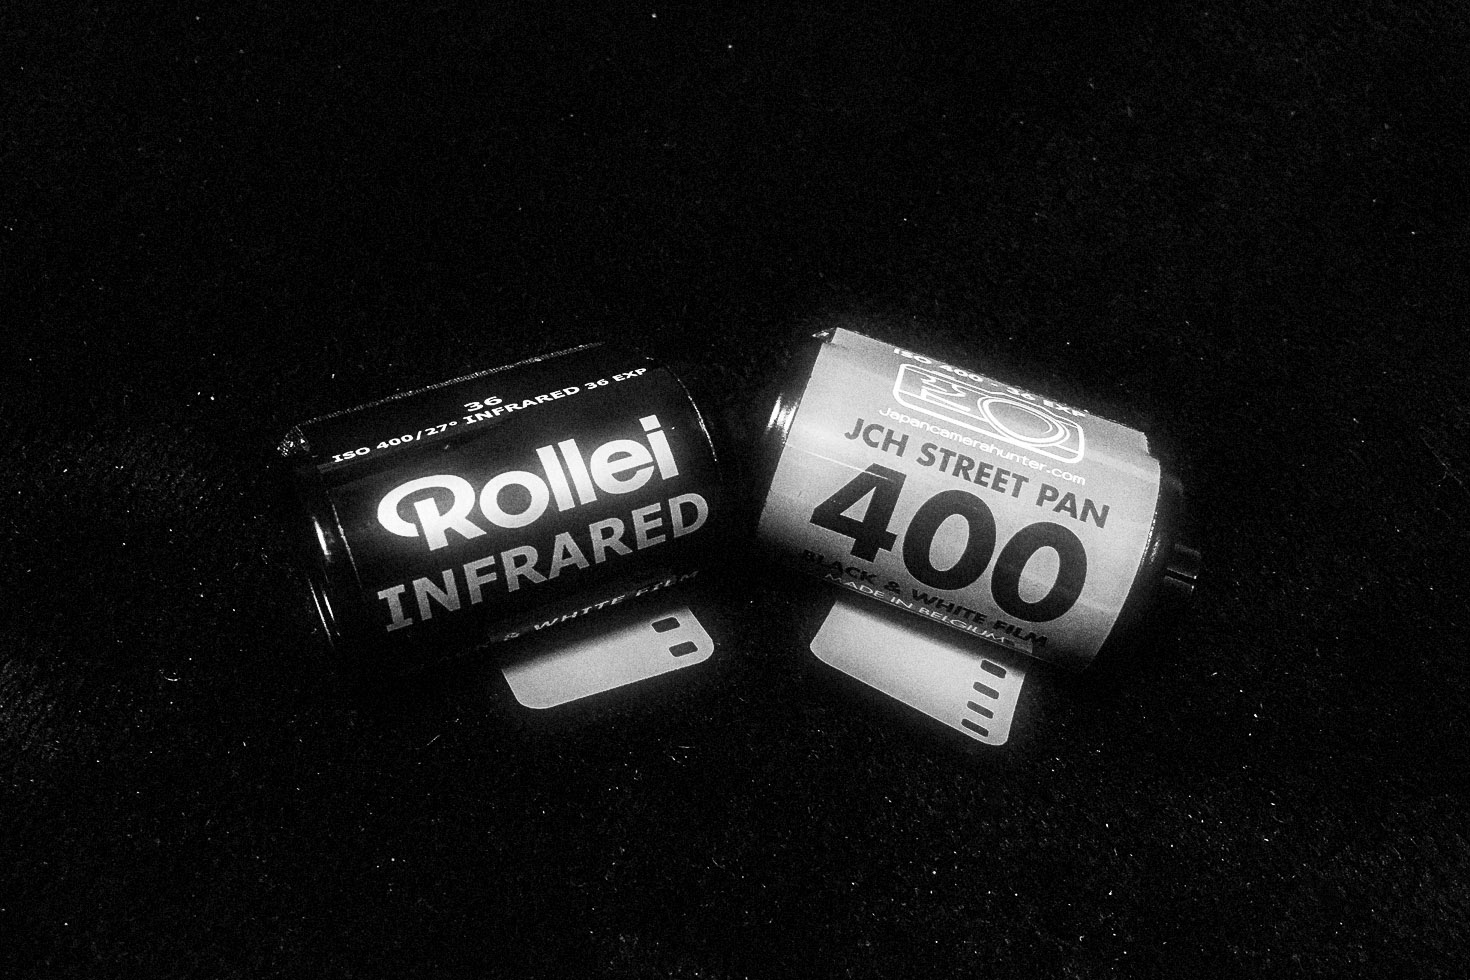 Infrared Film Shootout: JCH Streetpan vs. Rollei Infrared